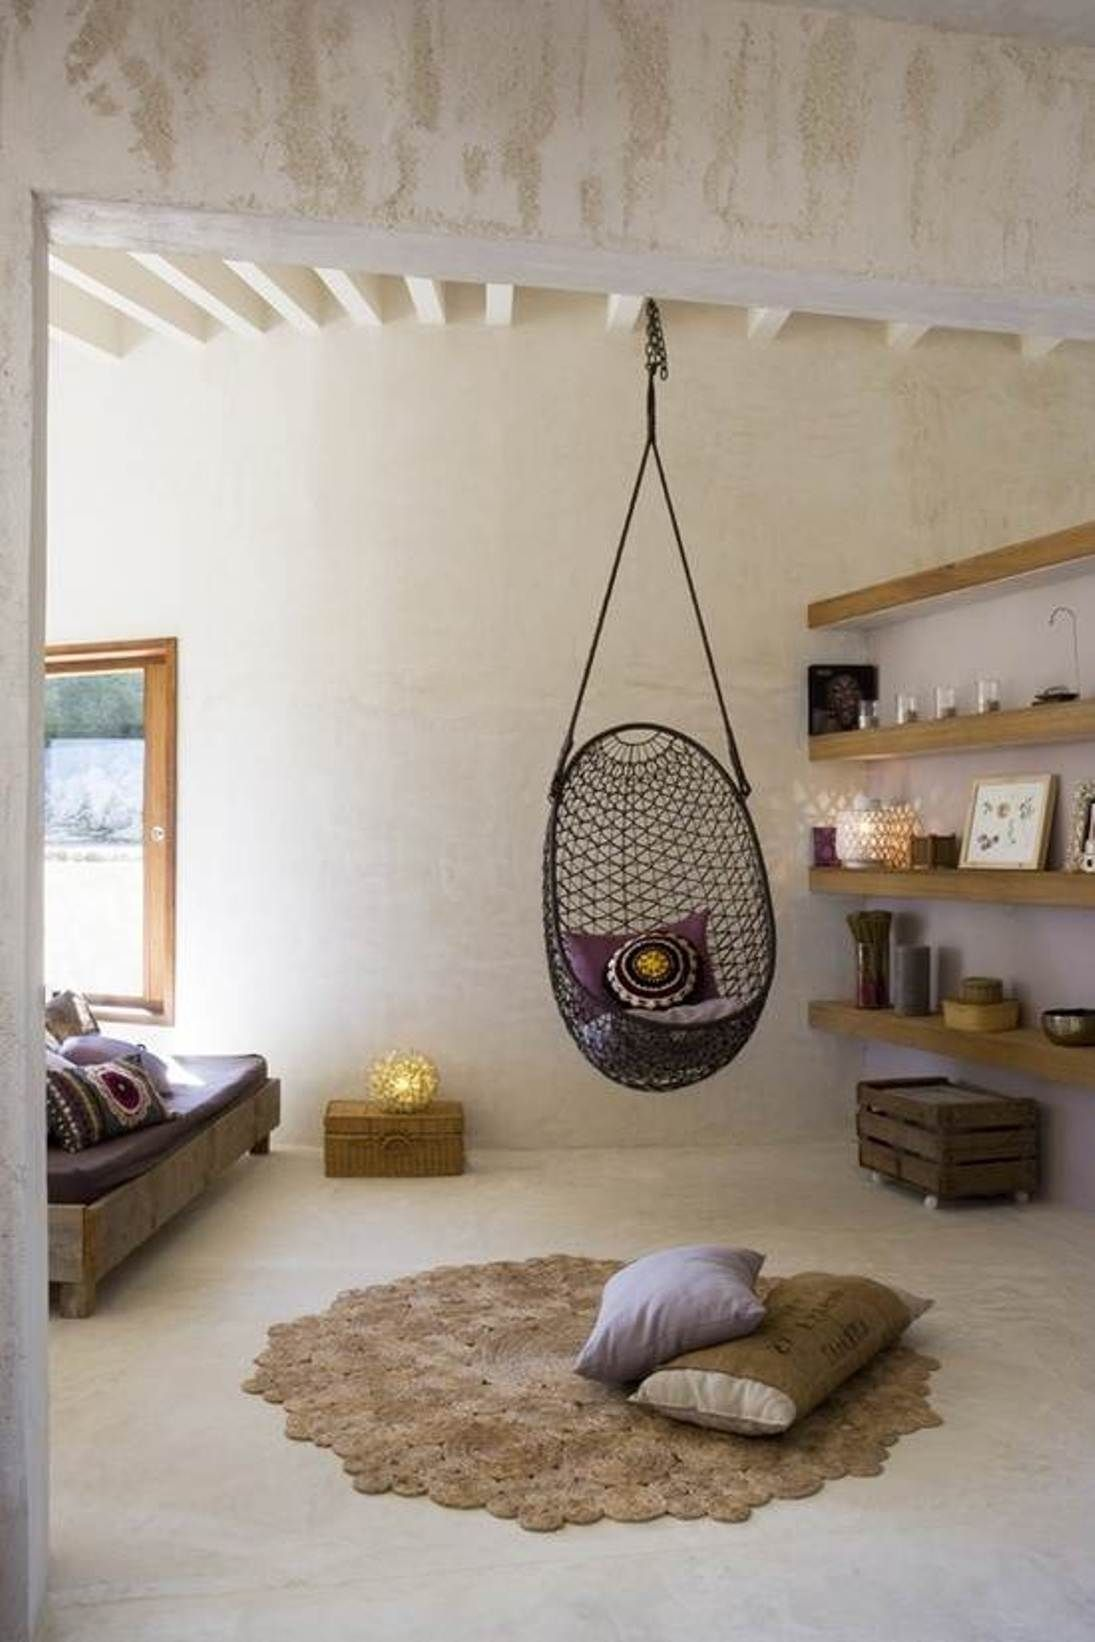 captivating grid rattan bedroom hanging chair design ForIndoor Hanging Chair For Bedroom